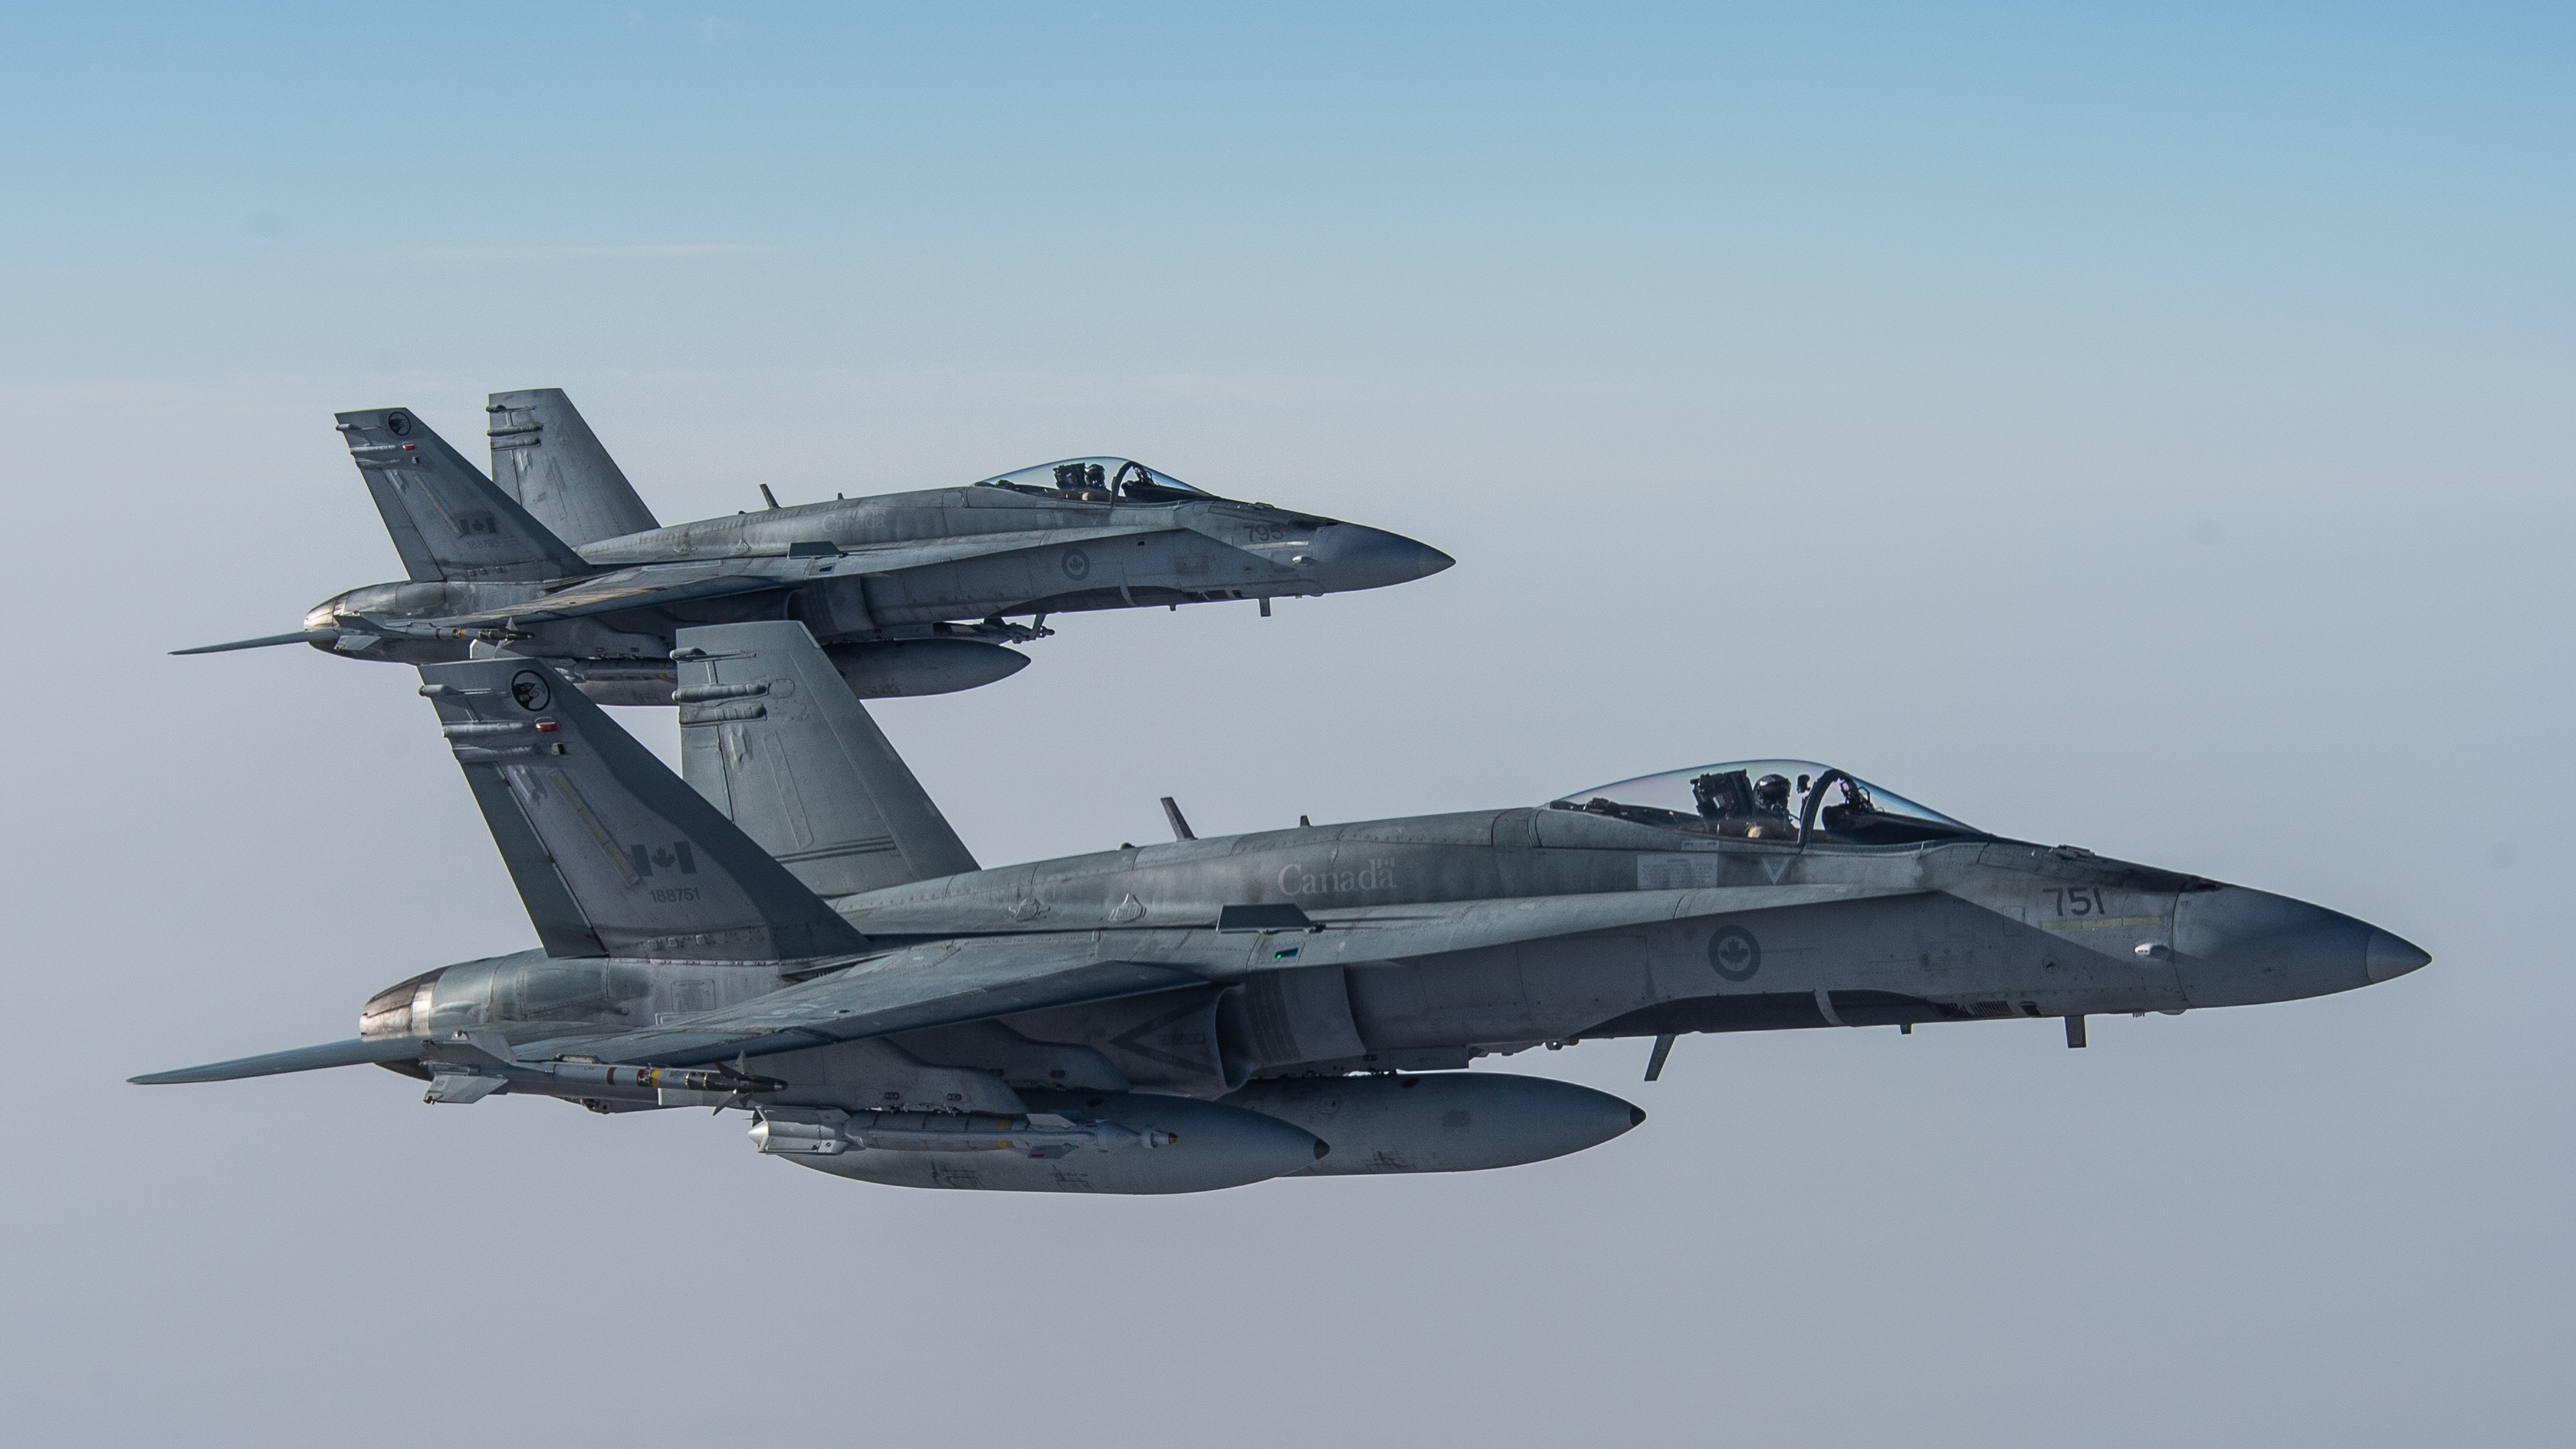 Two CF-18 Hornets  (Photo: Canadian Forces Combat Camera, DND / Royal Canadian Air Force website)